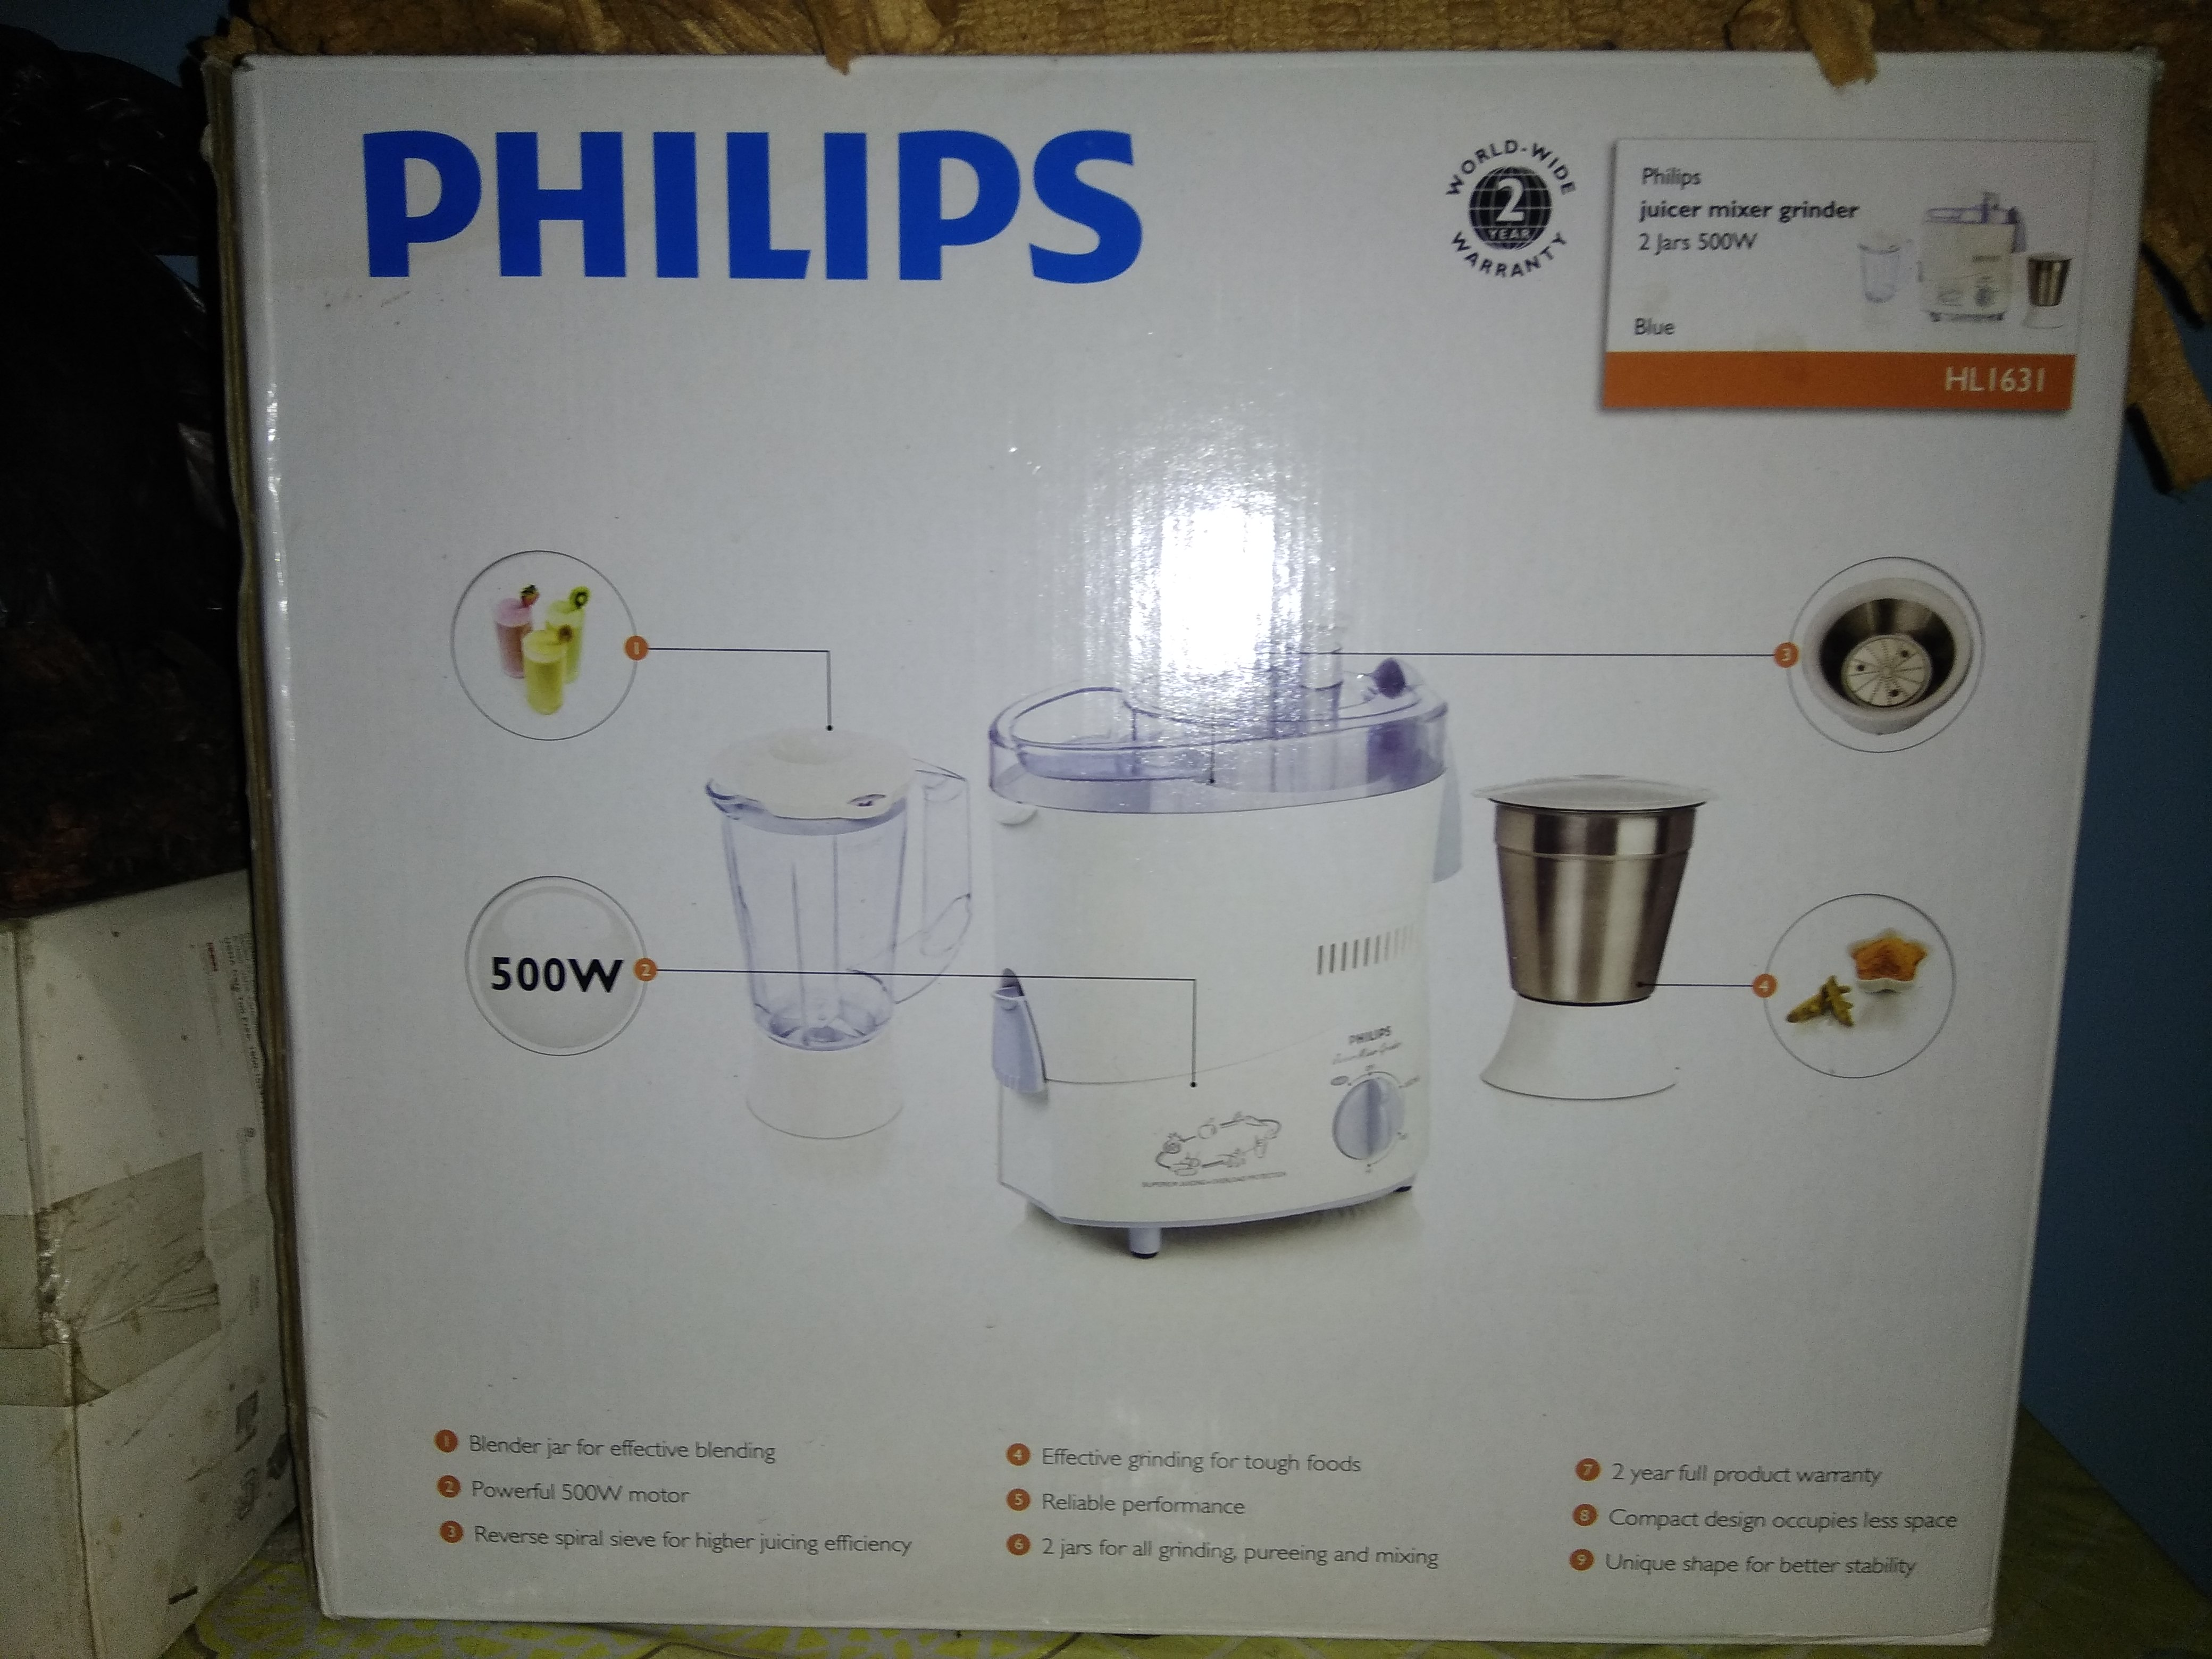 A average product from Philips     - PHILIPS HL1631 500 W